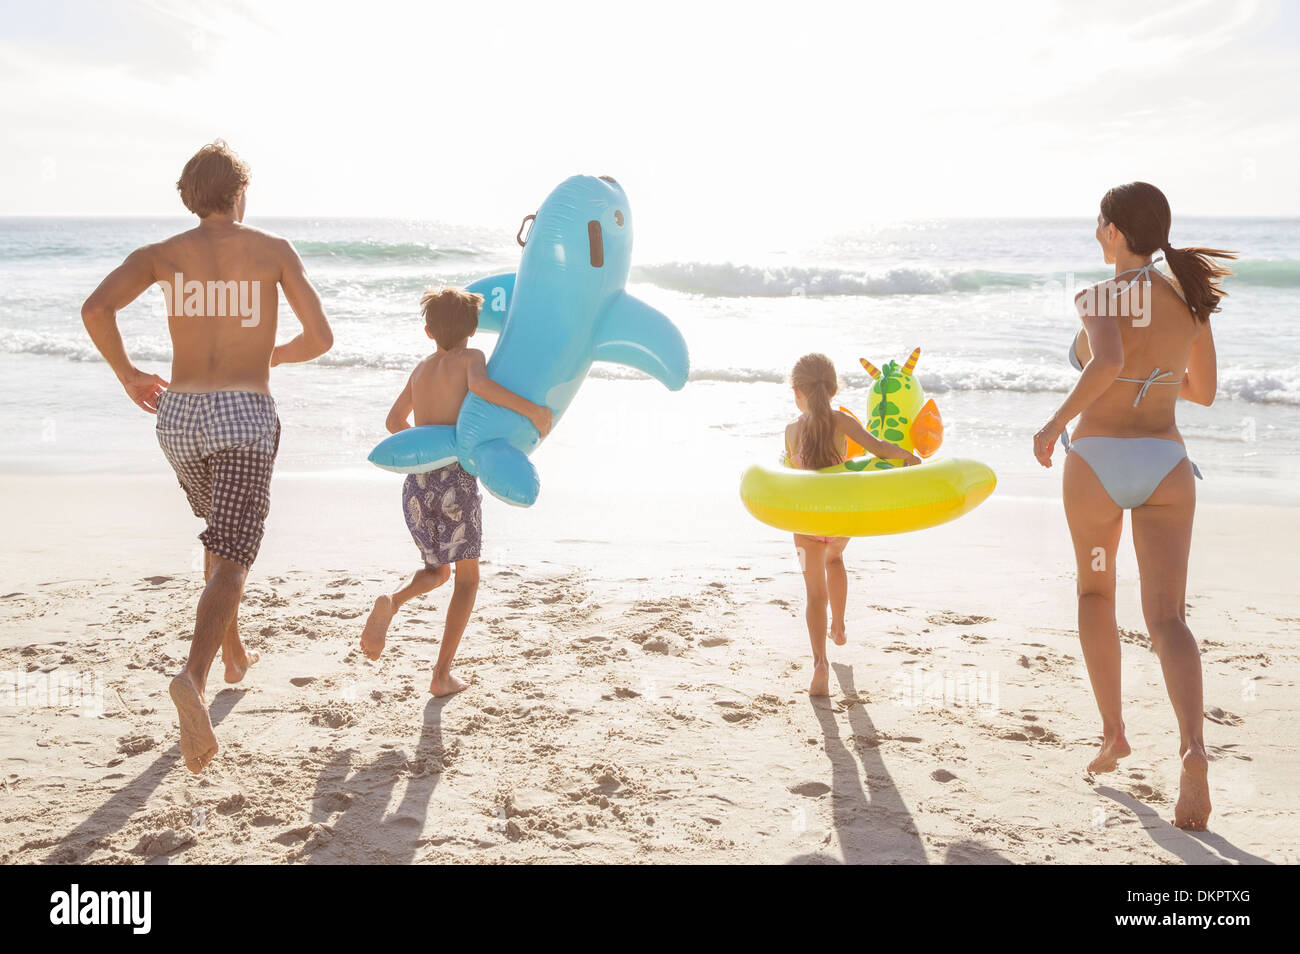 Family playing together on beach - Stock Image